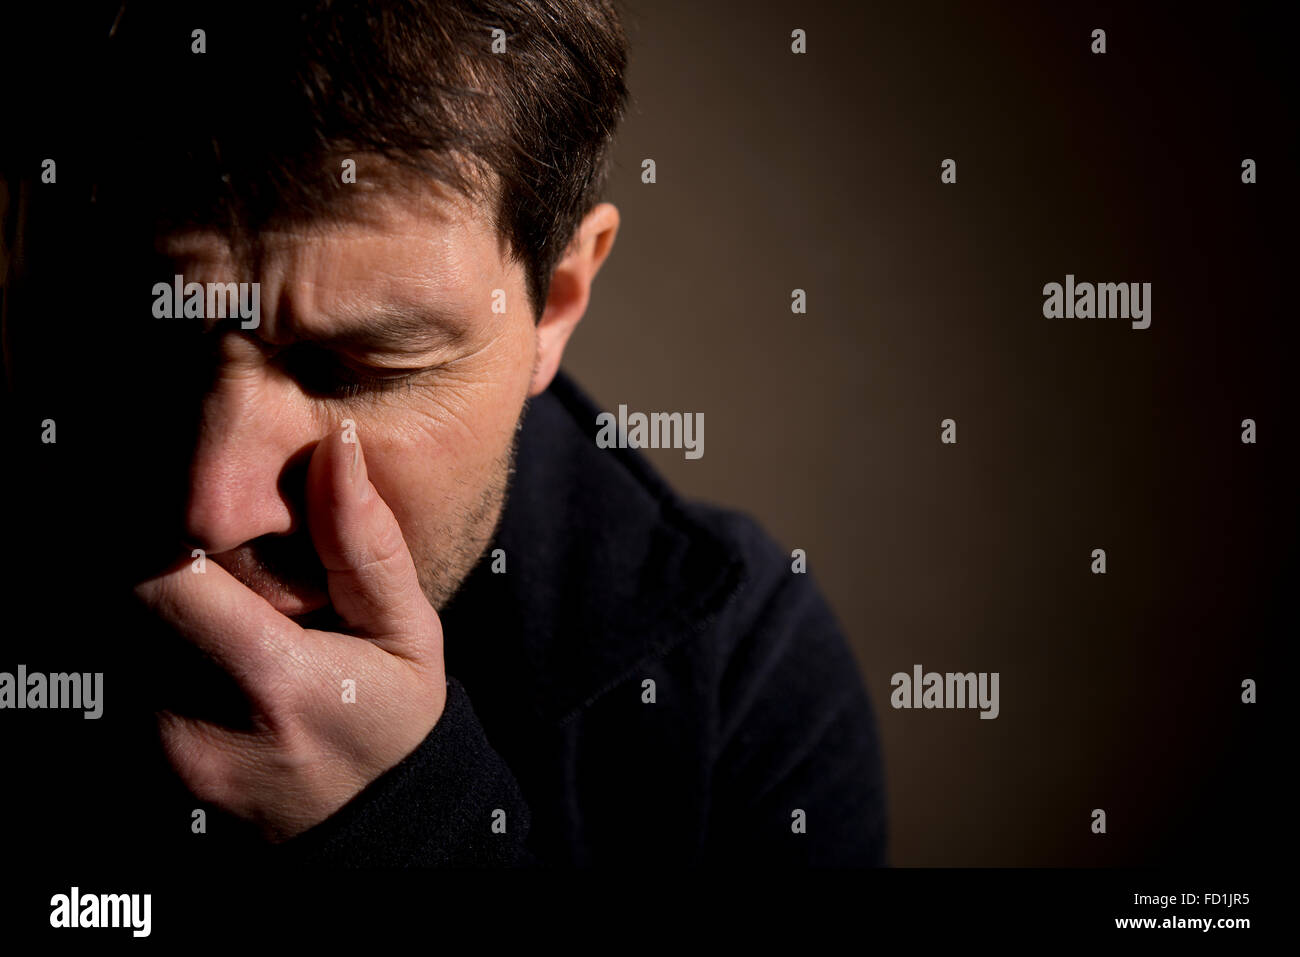 Portrait of man crying, with one hand over his mouth and eyes closed with pain. His face spot lit with half his - Stock Image